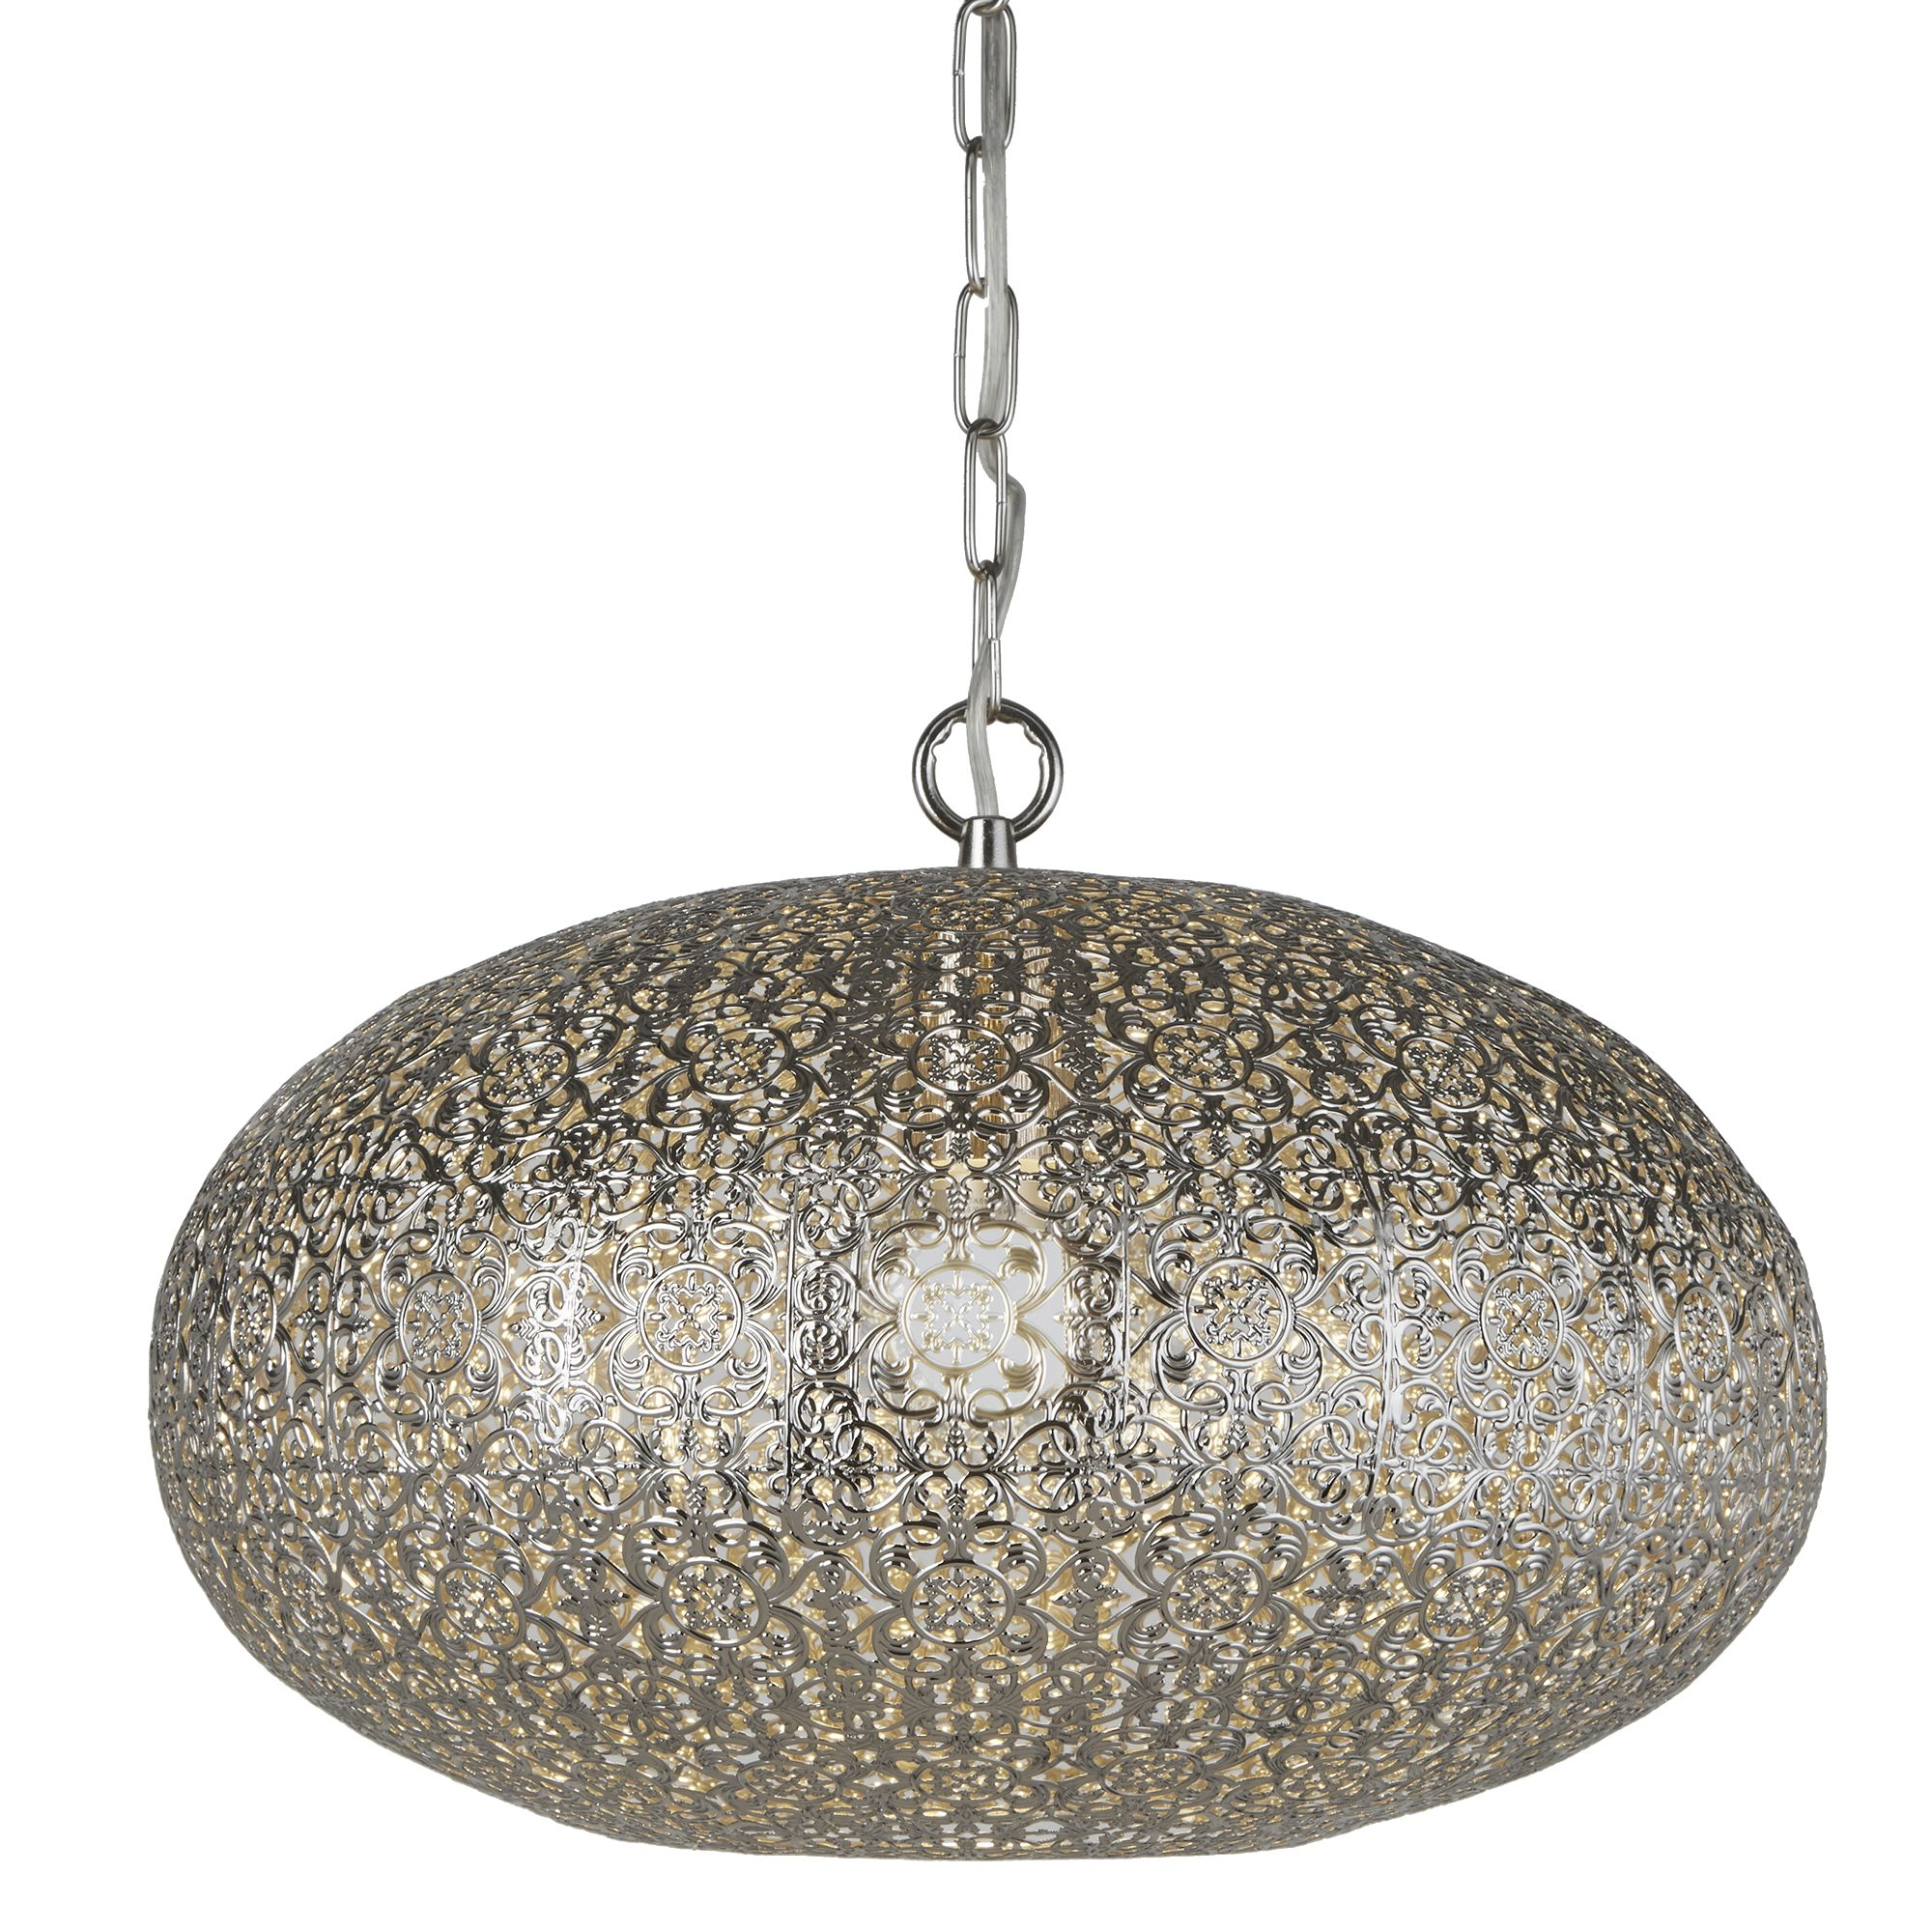 Searchlight Moroccan 1 Light Shiny Nickel Pendant Ceiling Chandelier Fitting New